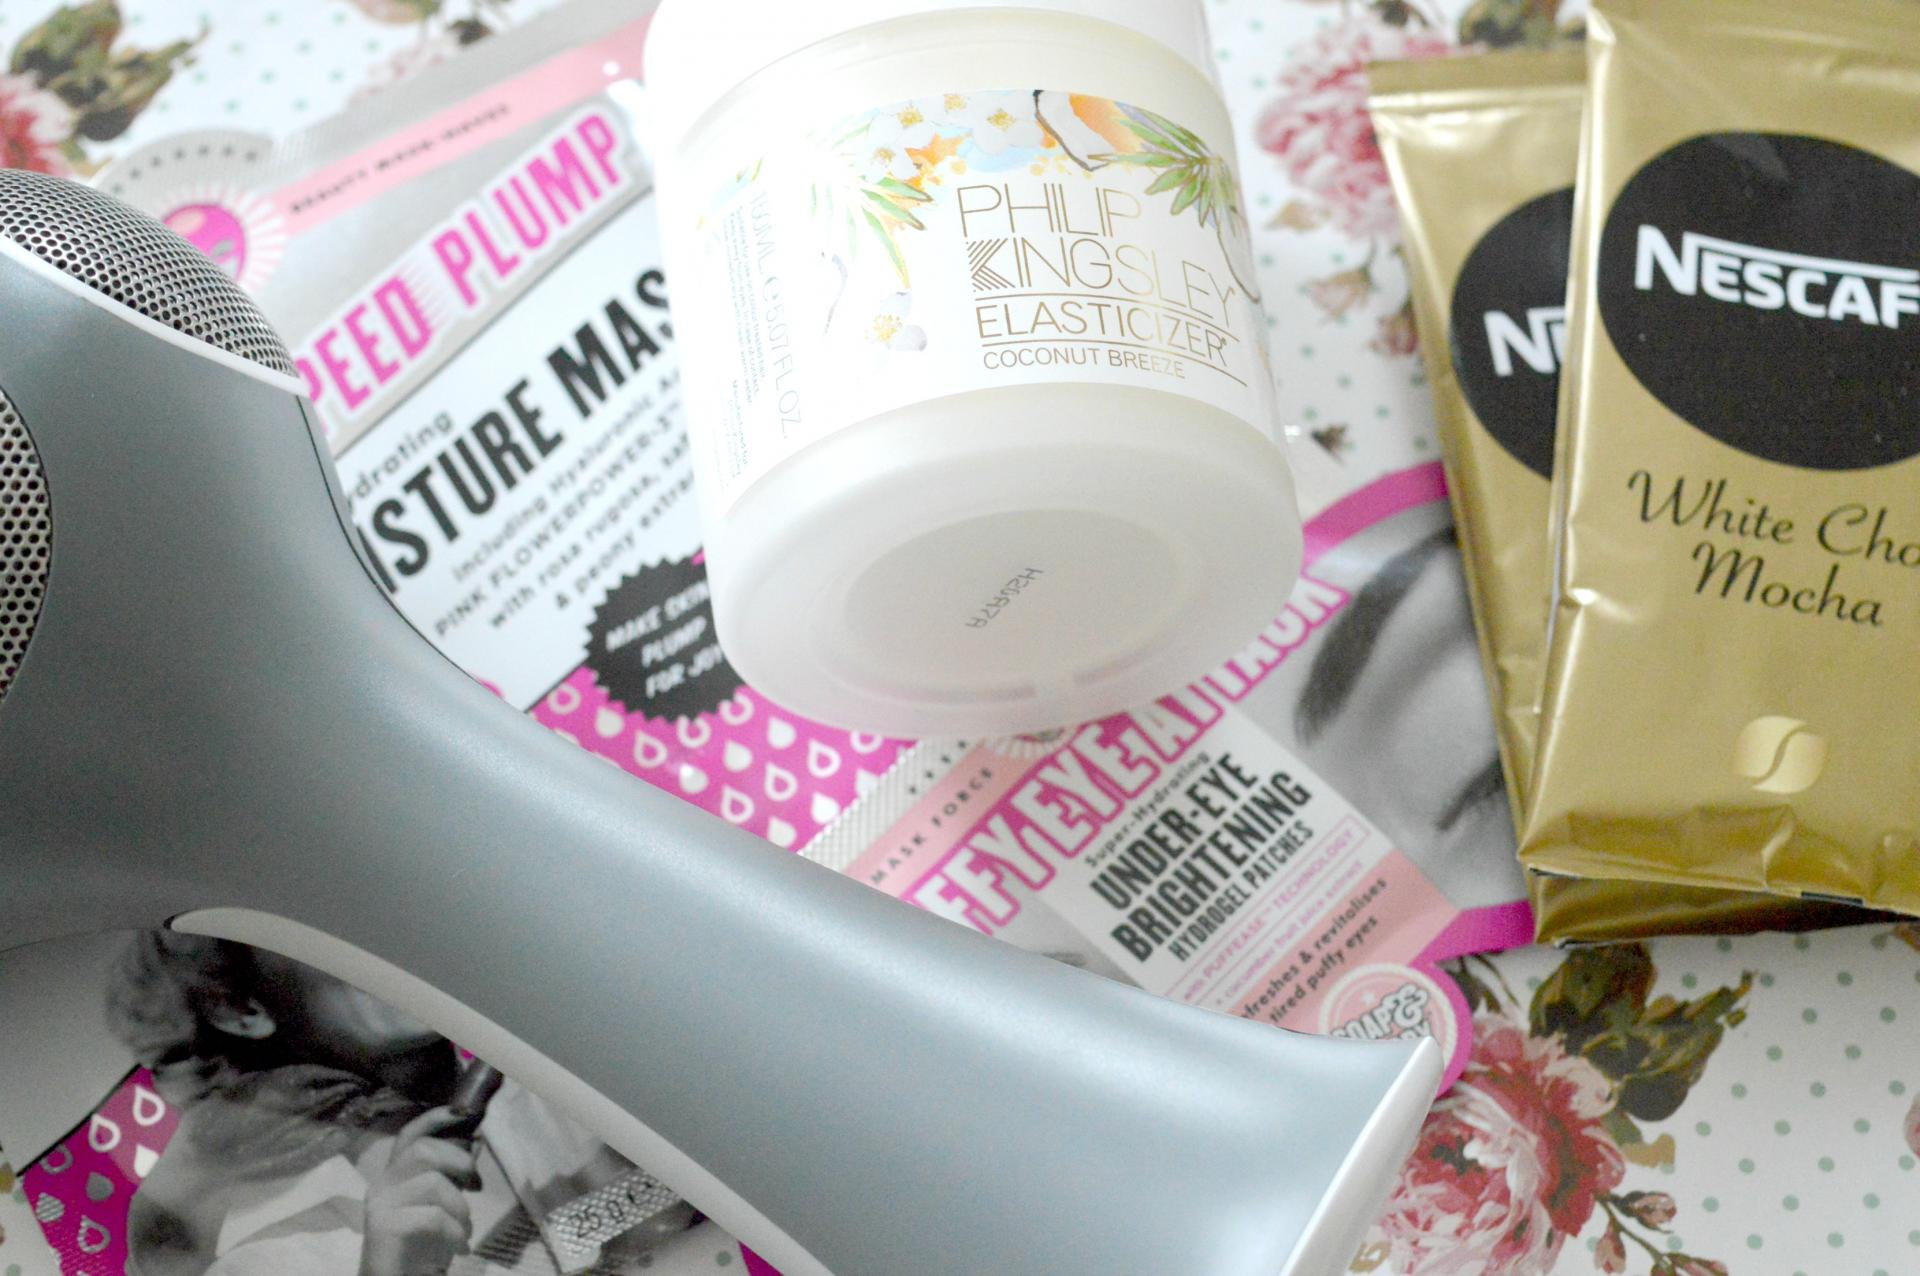 June 2017 Favourites | Tria Beauty Hair Removal Laser, Soap and Glory Miracle Moisture Mask, Soap and Glory Puffy Eye Attack Under-Eye Brightening Hydrogel Patches, Philip Kingsley Coconut Breeze Elasticizer and Nescafe Gold White Choc Mocha